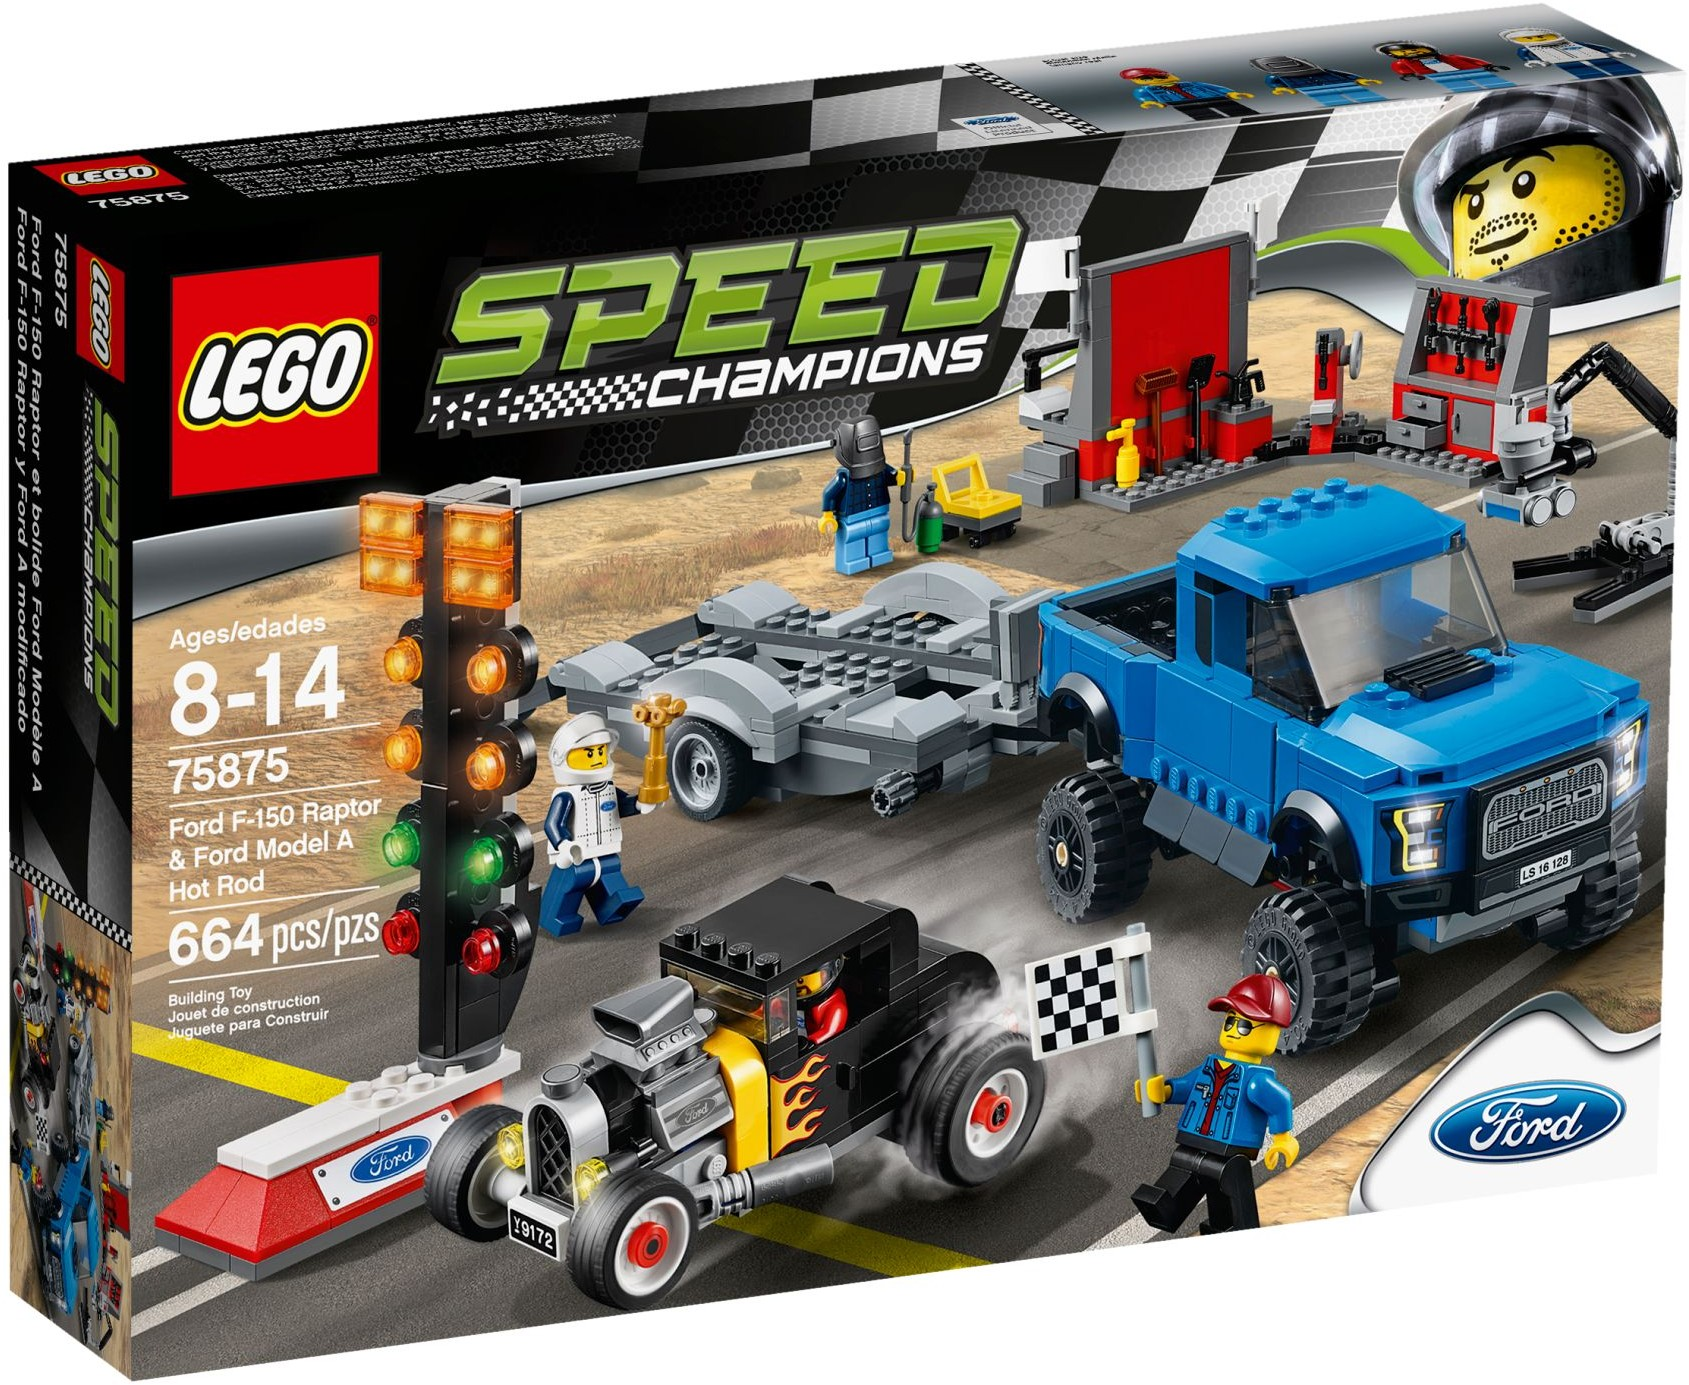 LEGO 75875 -Speed Champions - Ford F-150 Raptor & Ford Model A Hot Rod